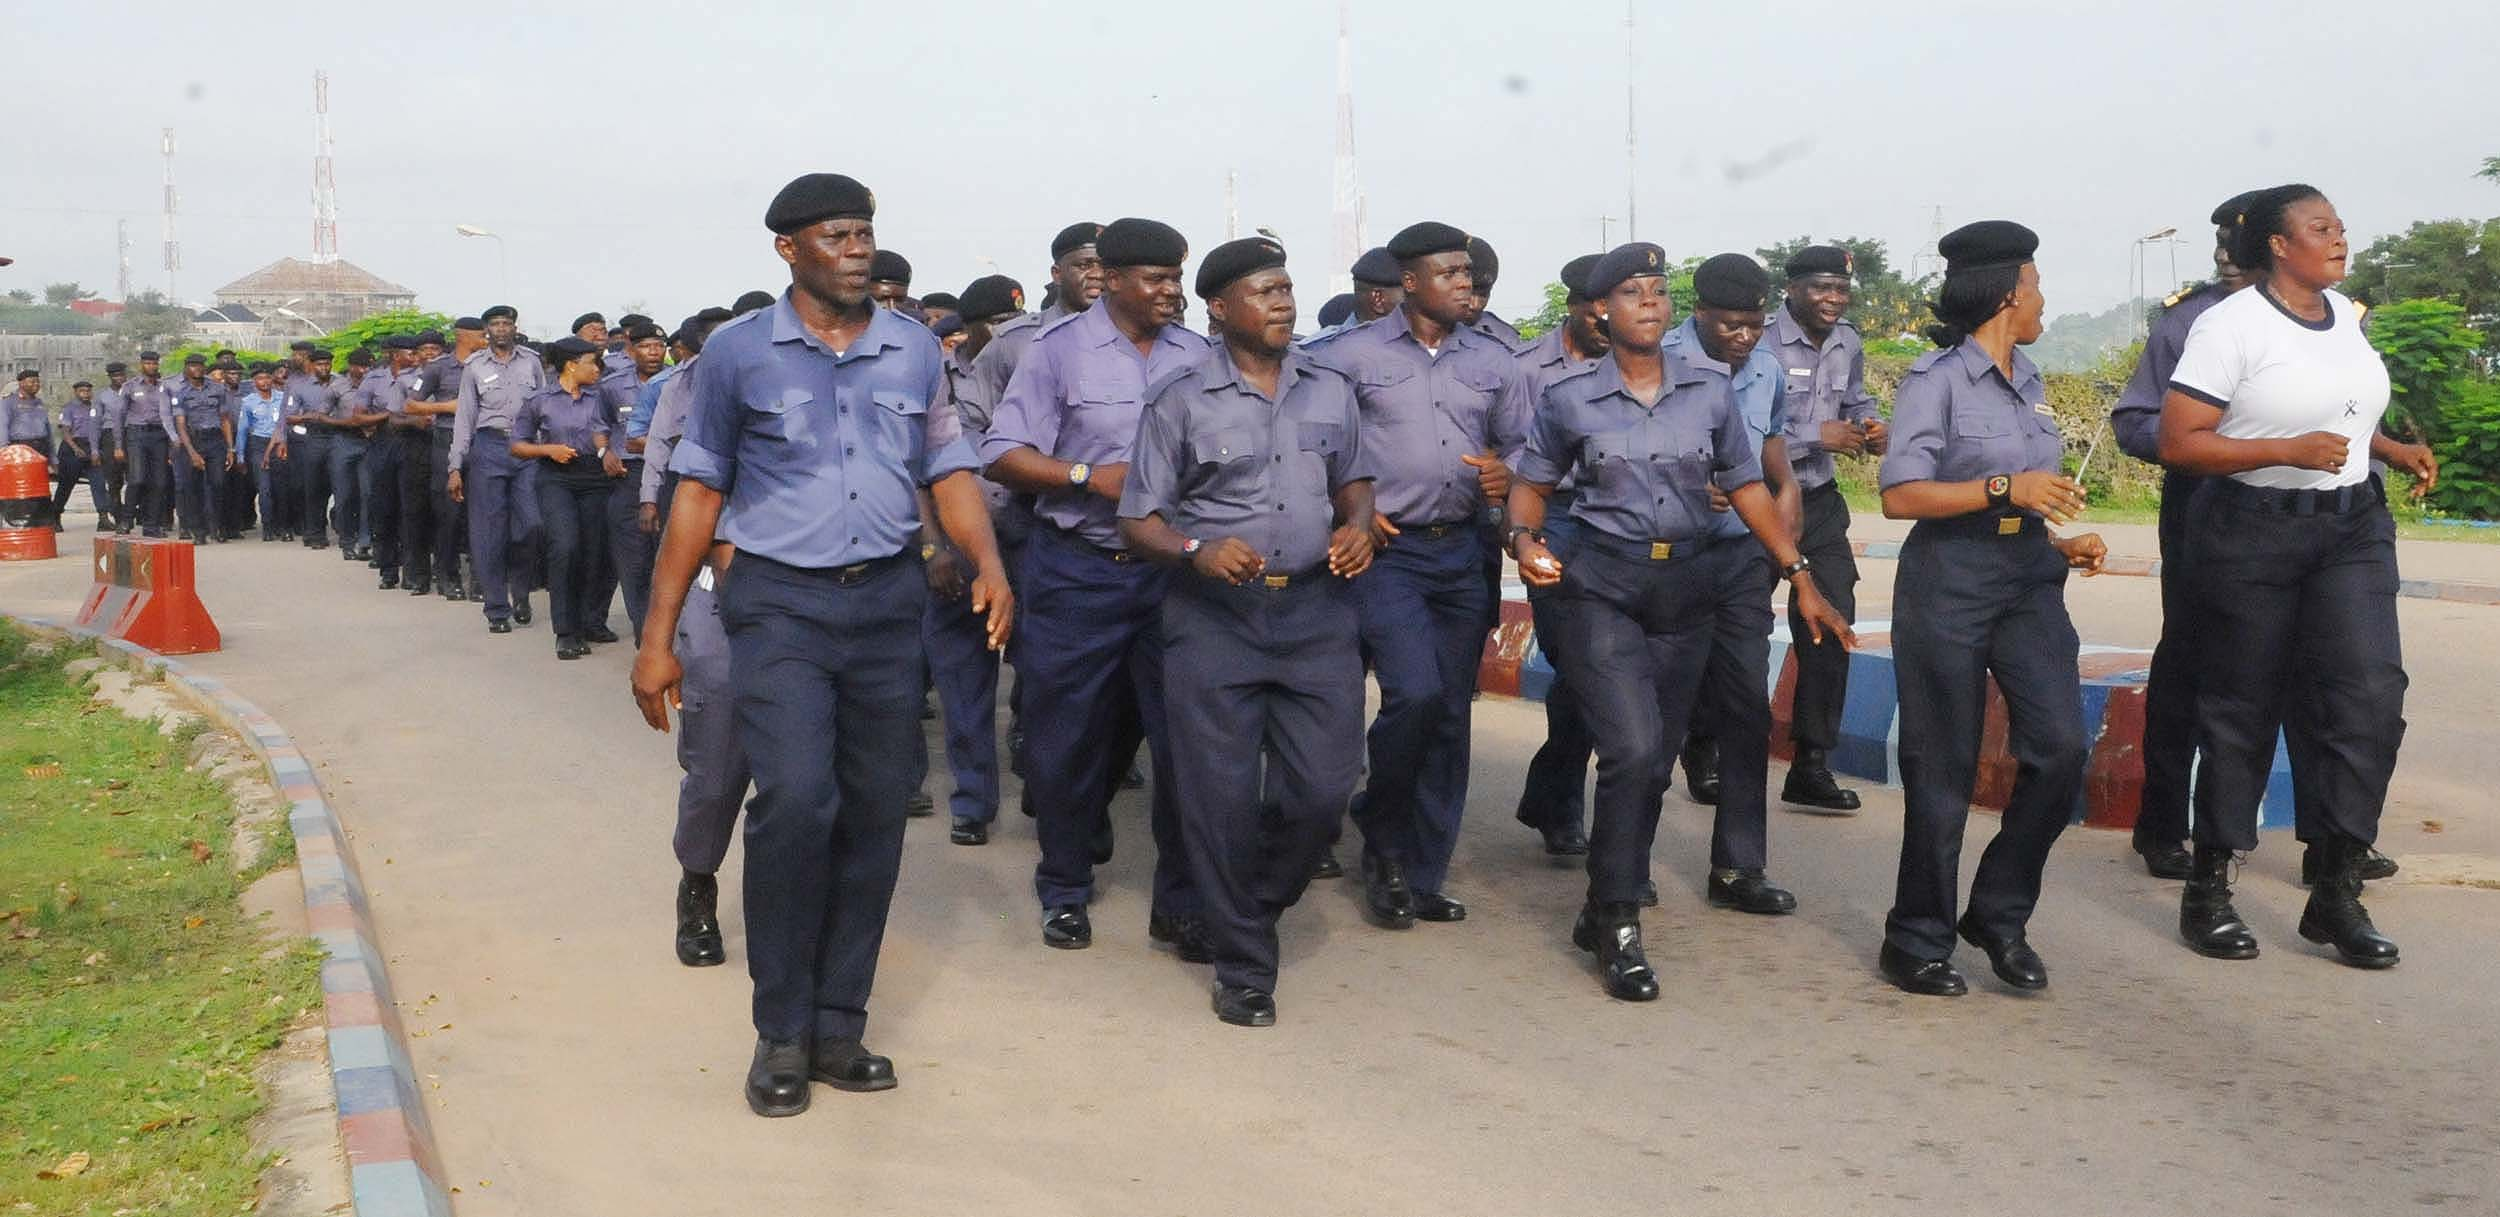 Nigeria Navy Recruitment: Men of the Nigerian Navy Exercise in this image released by the navy